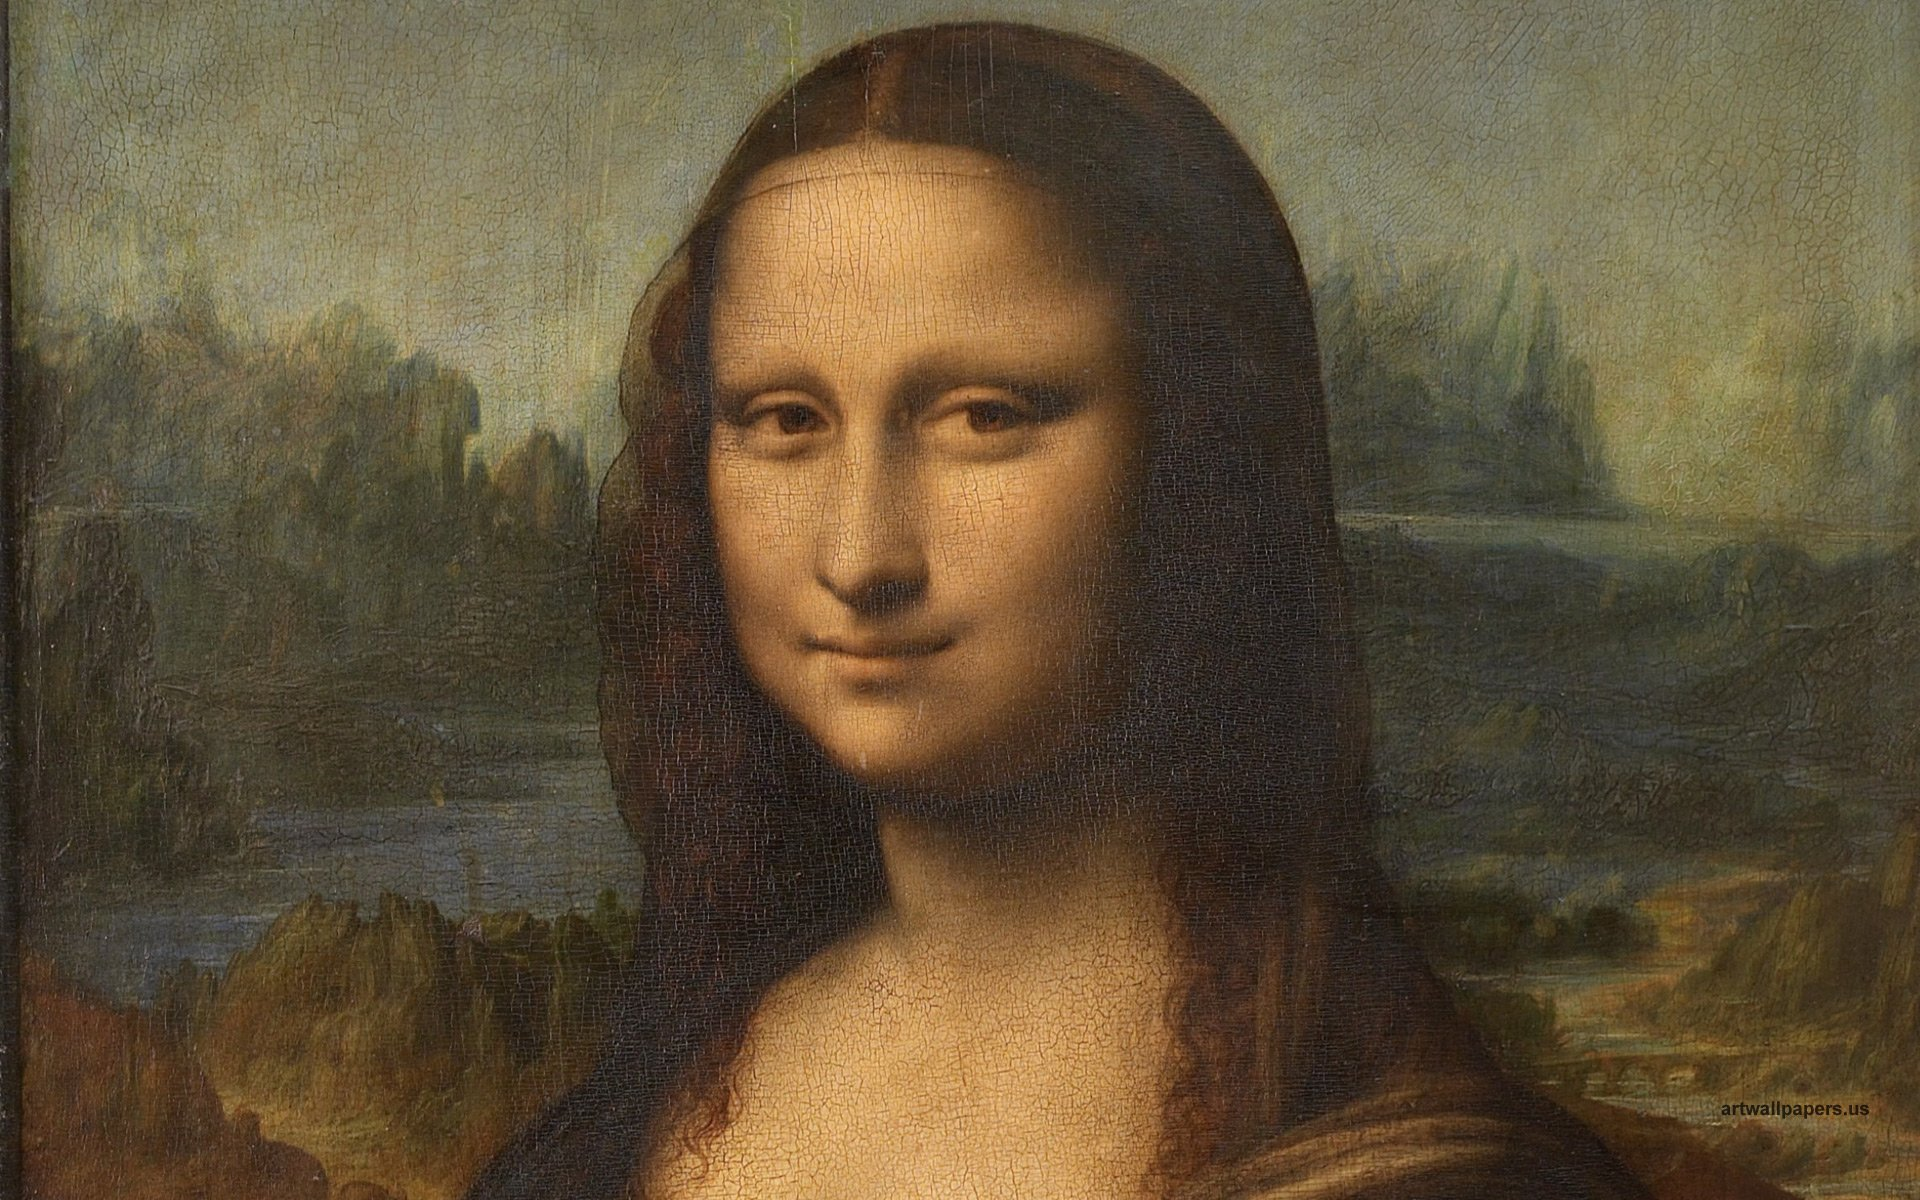 Mona Lisa Wallpaper Leonardo da Vinci Wallpapers HD Widescreen 1920x1200